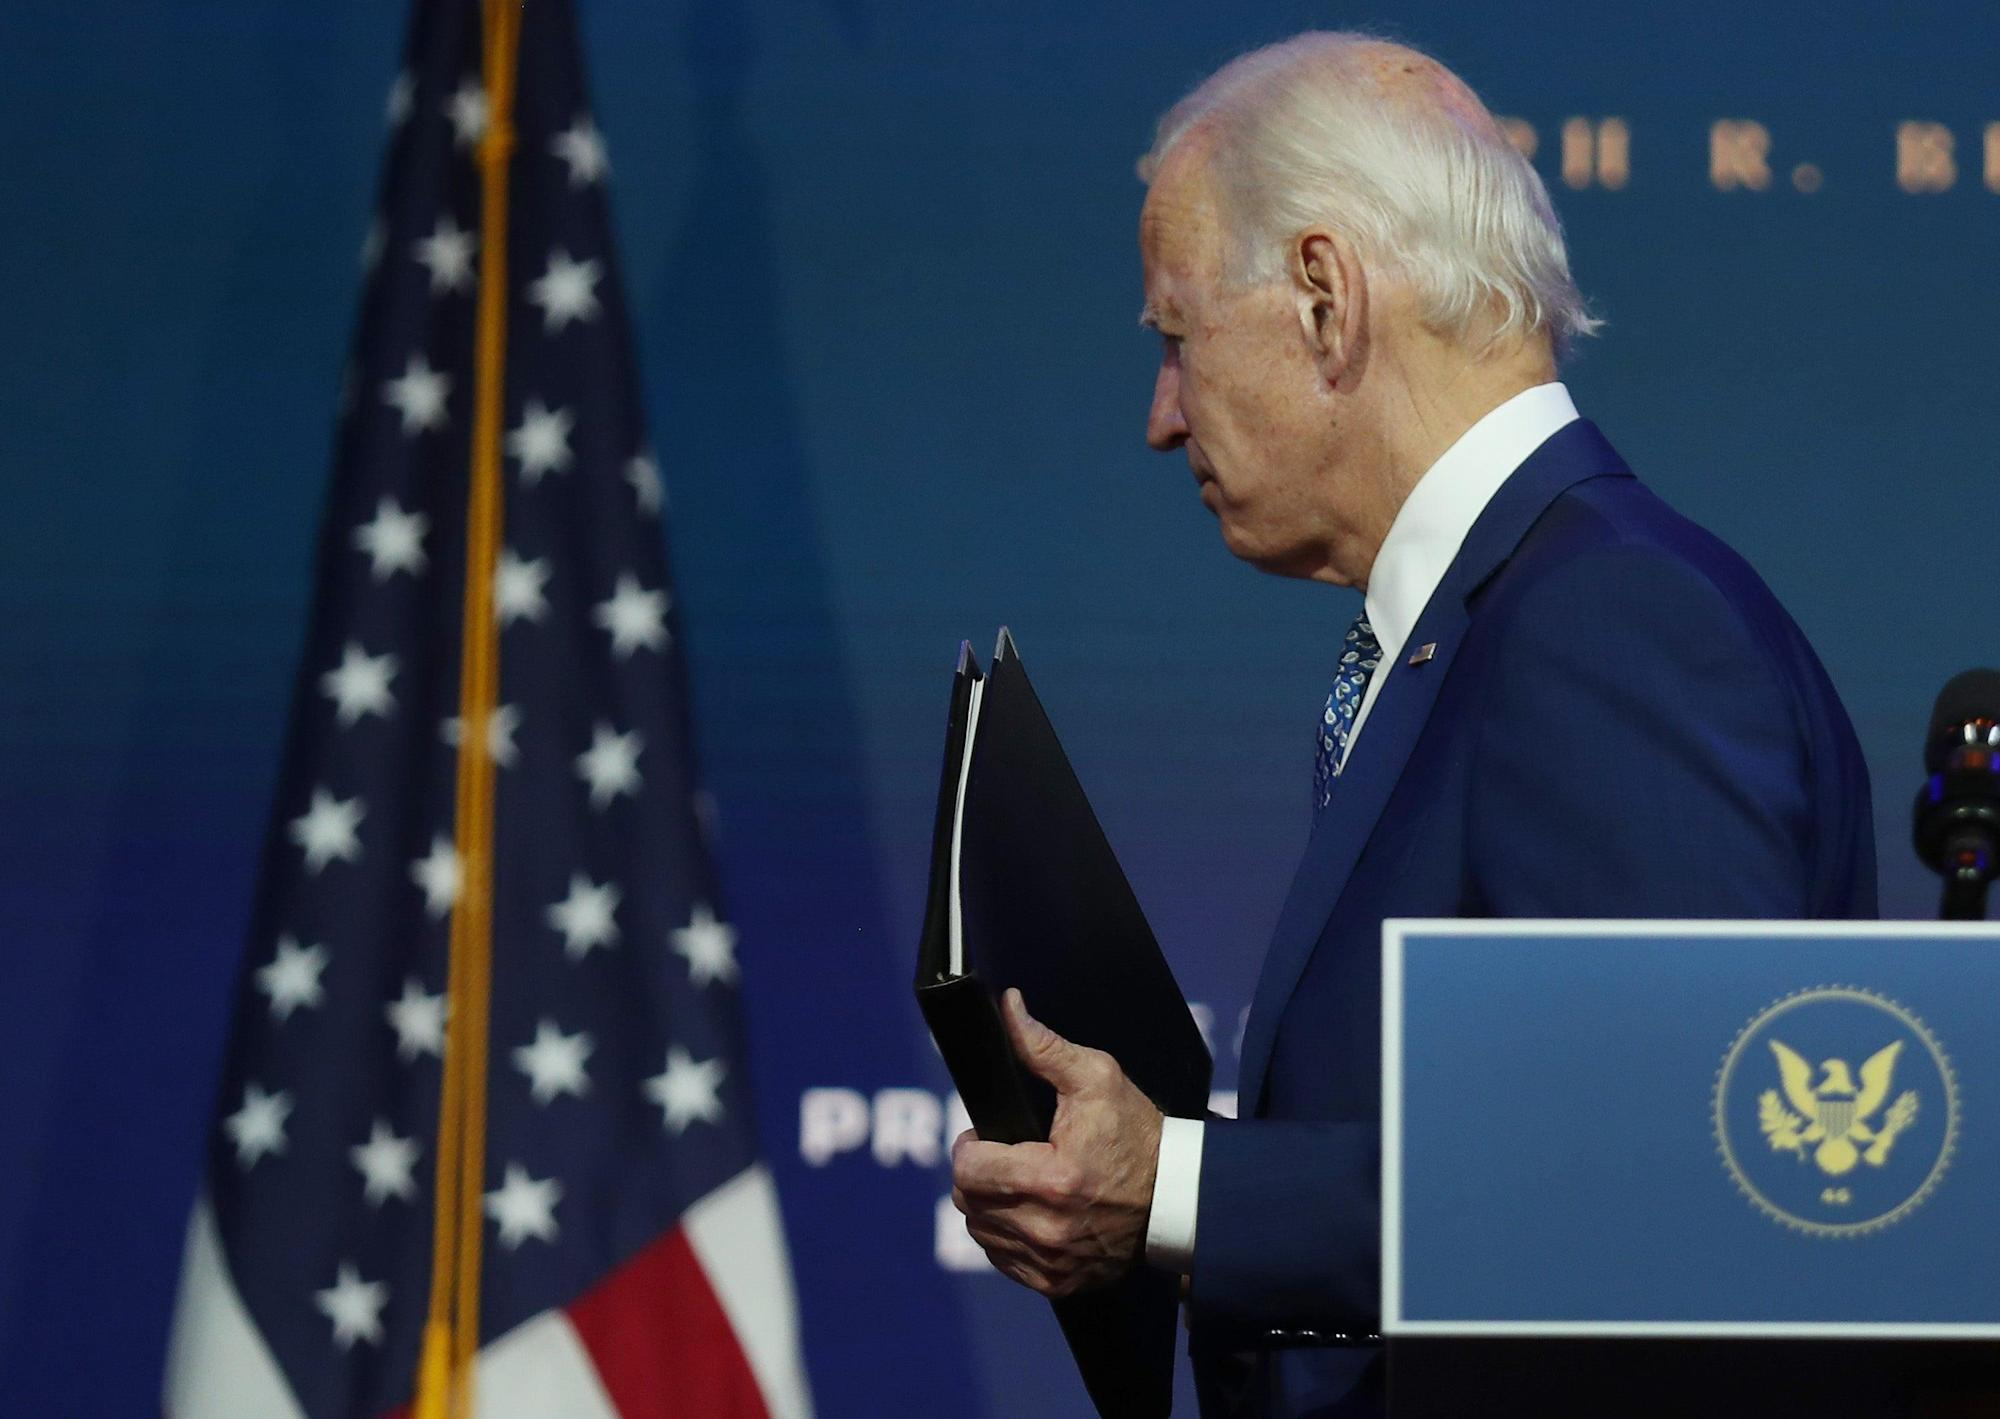 Biden's first 100 days: What the next US president can and can't do